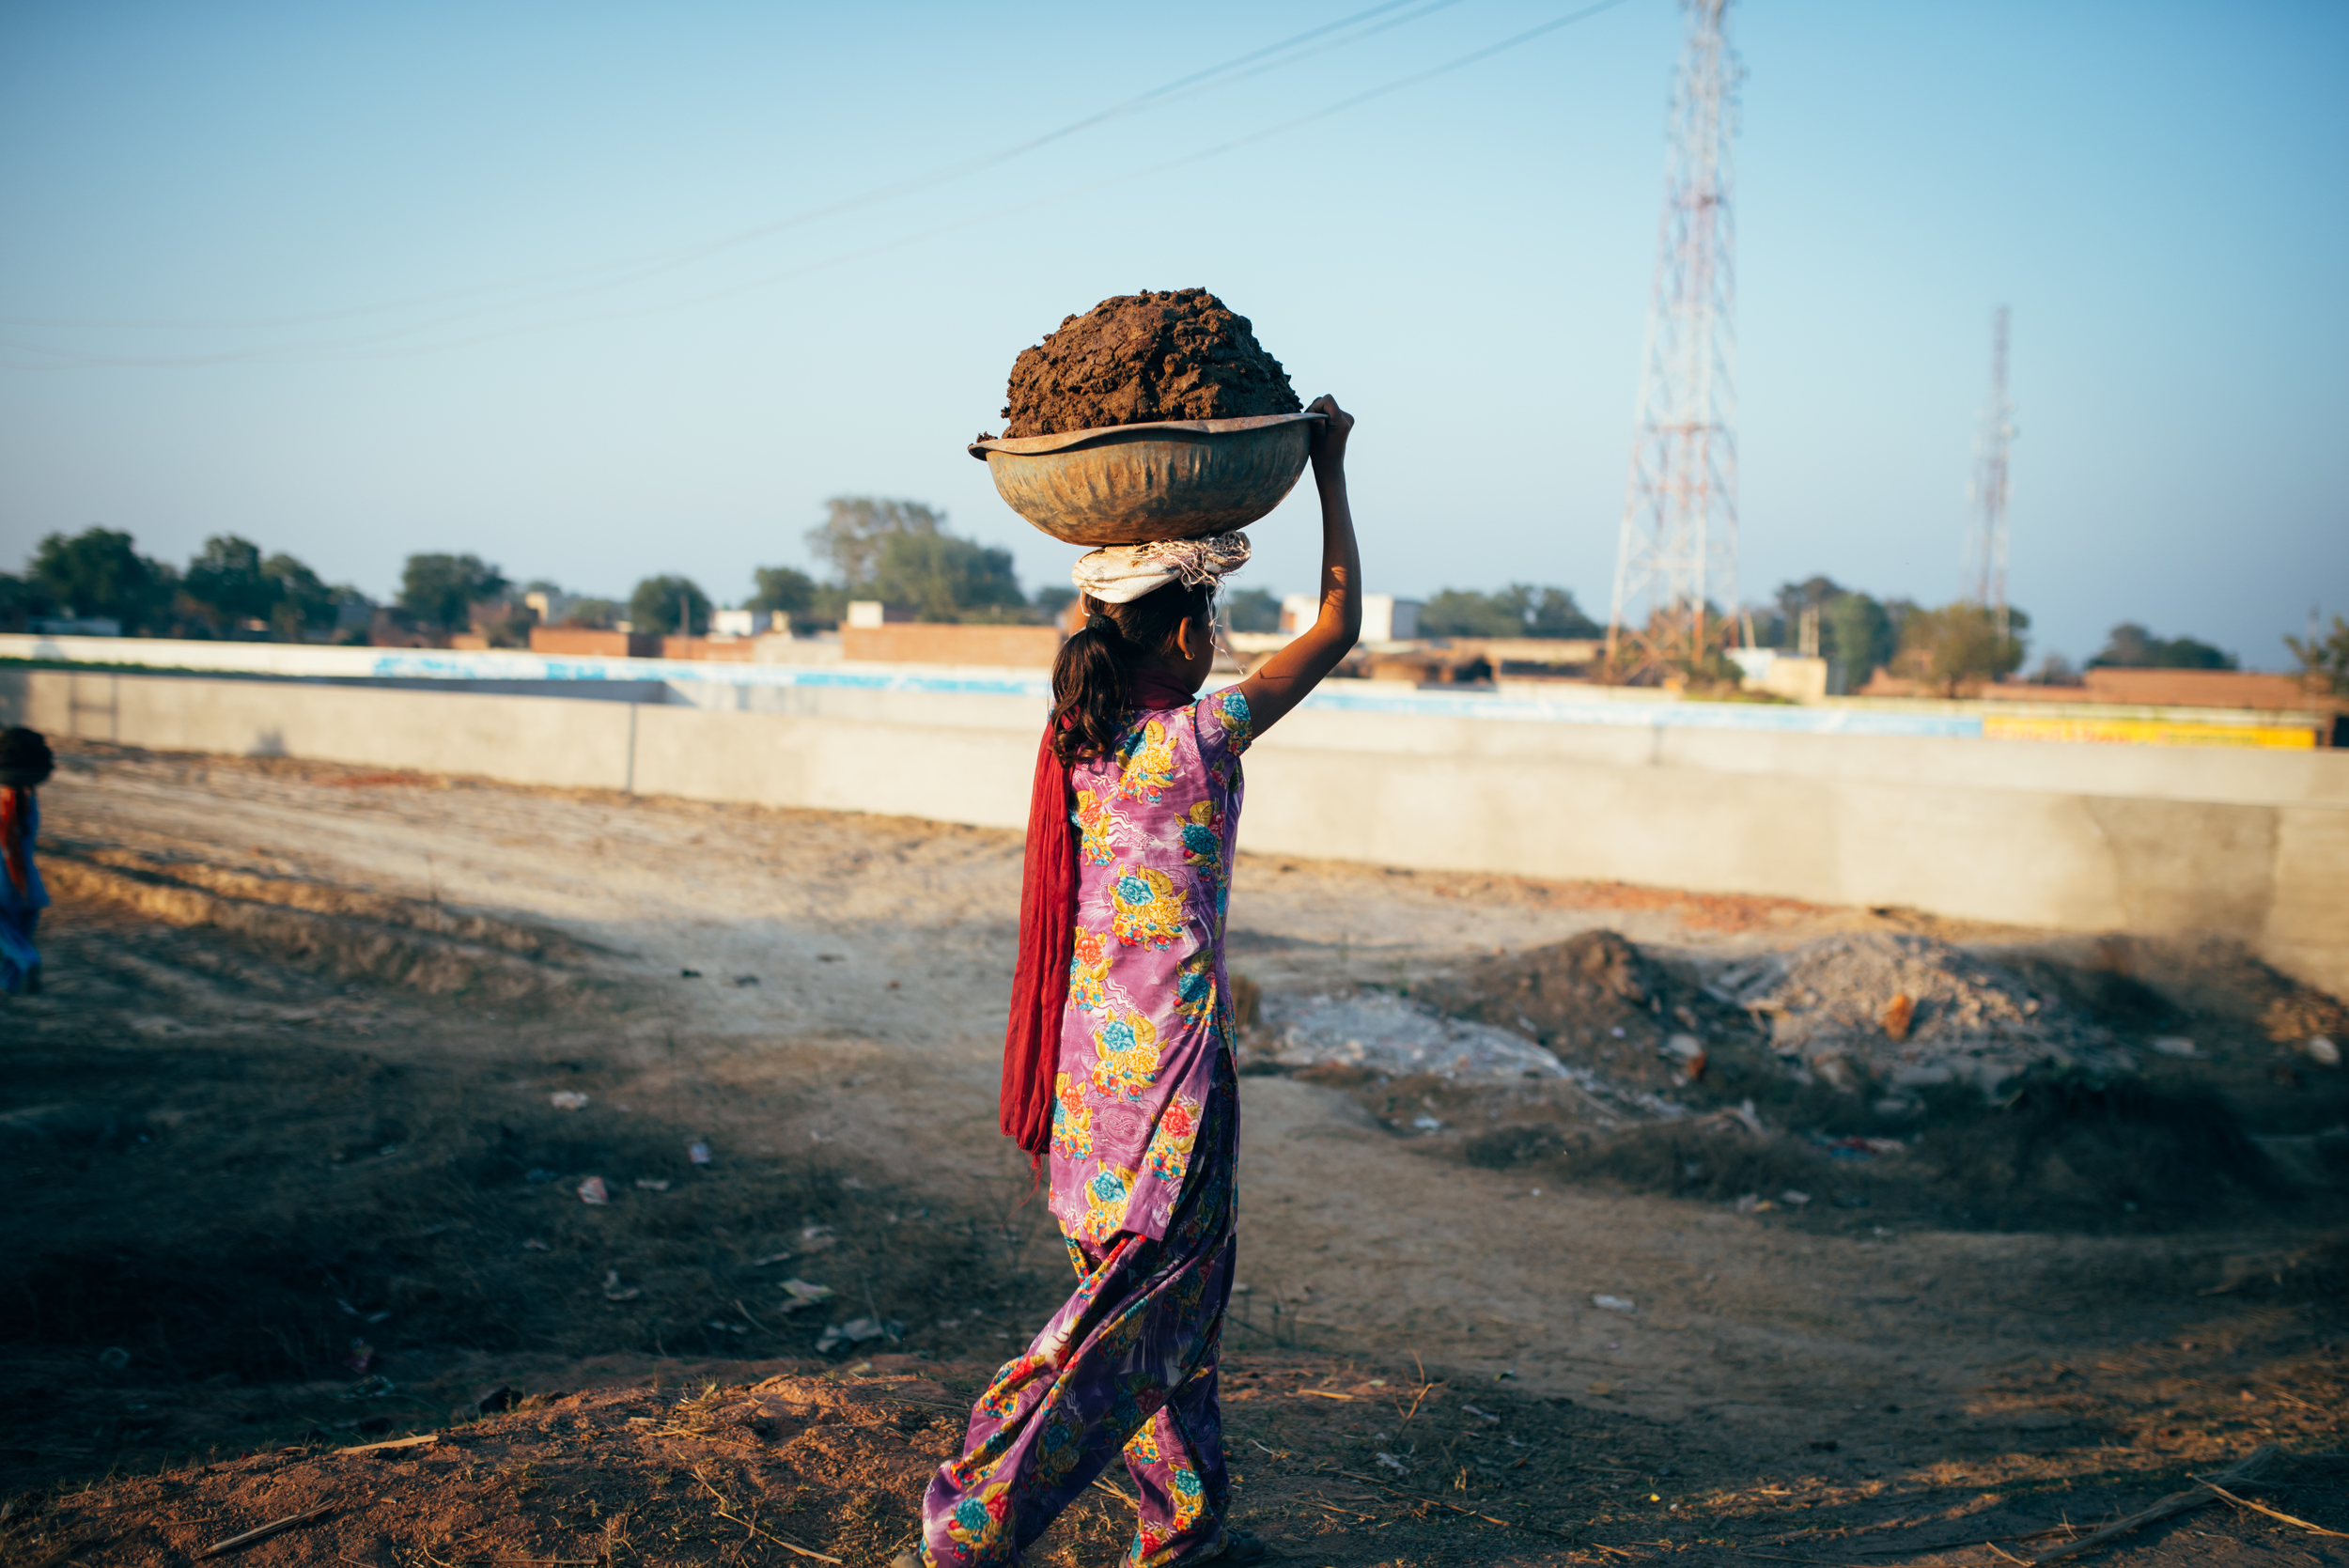 "When no one asks, ""What do you want to do with your life--what are your hopes for the future?"" the dreams of the young have no outlet for expression. For many young women in India, their future is determined by their need to work for daily sustenance."